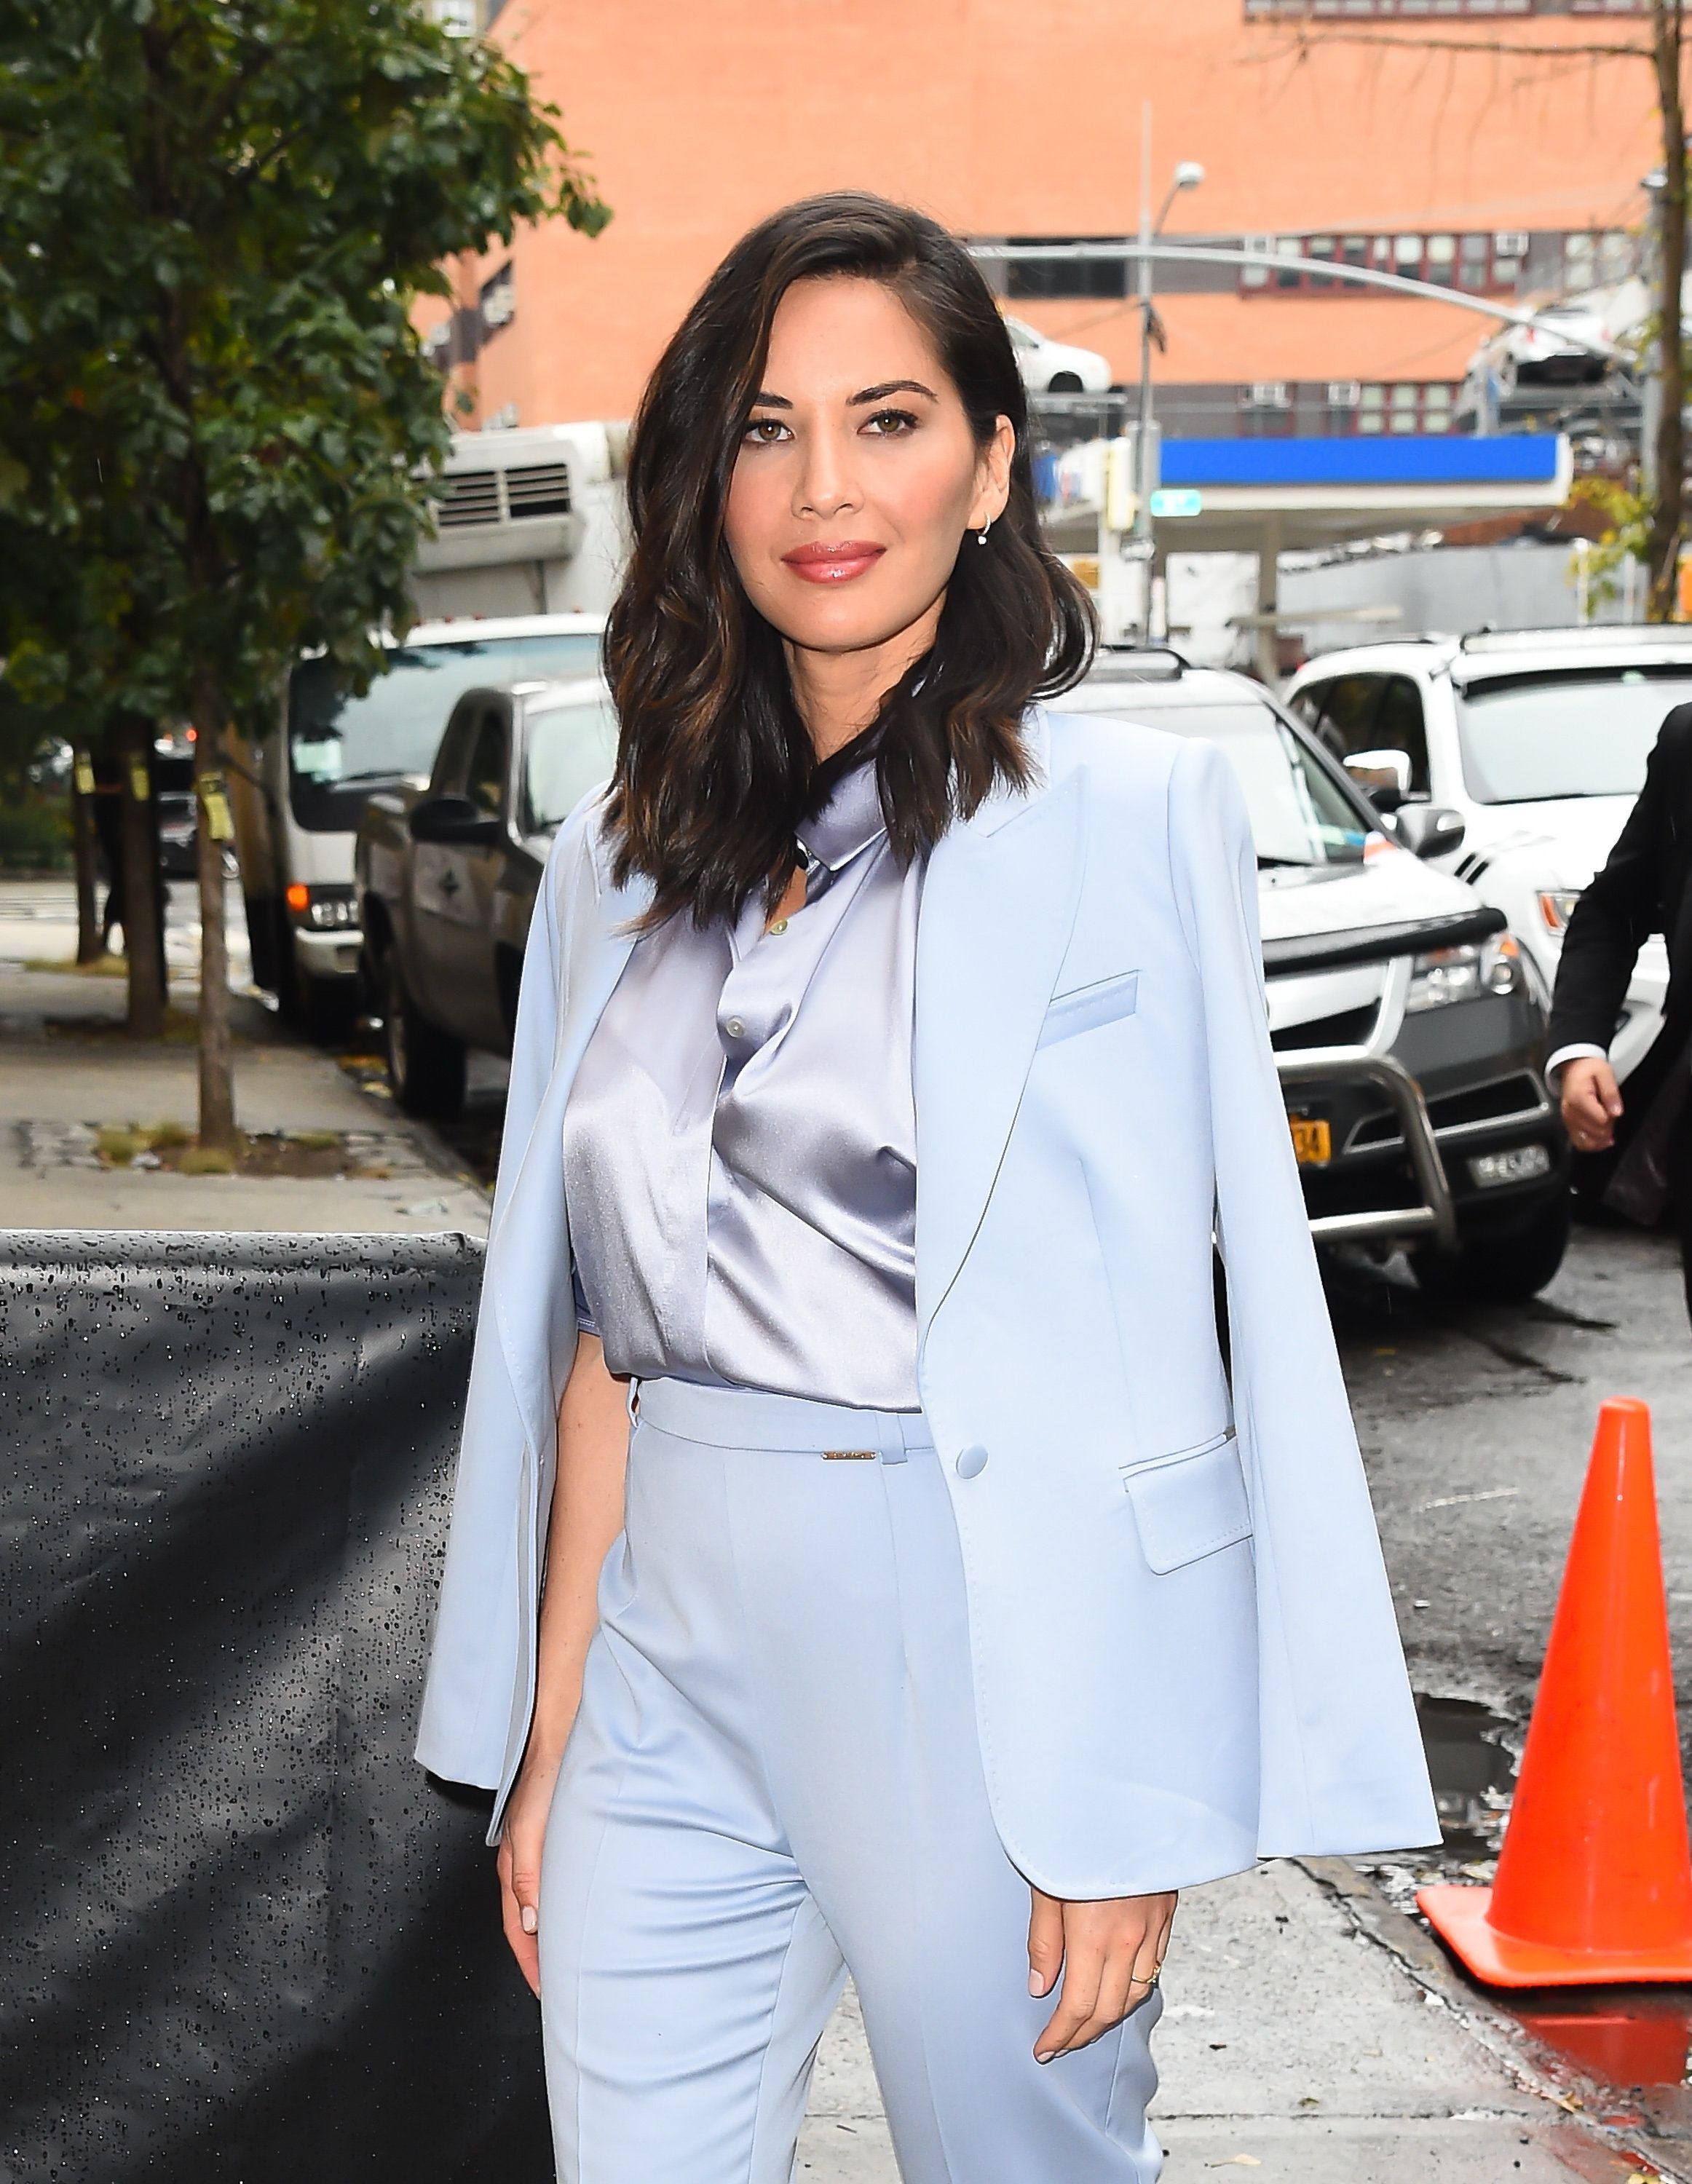 Olivia Munn Doubts Hollywood Will Truly Punish Sexual Assaulters